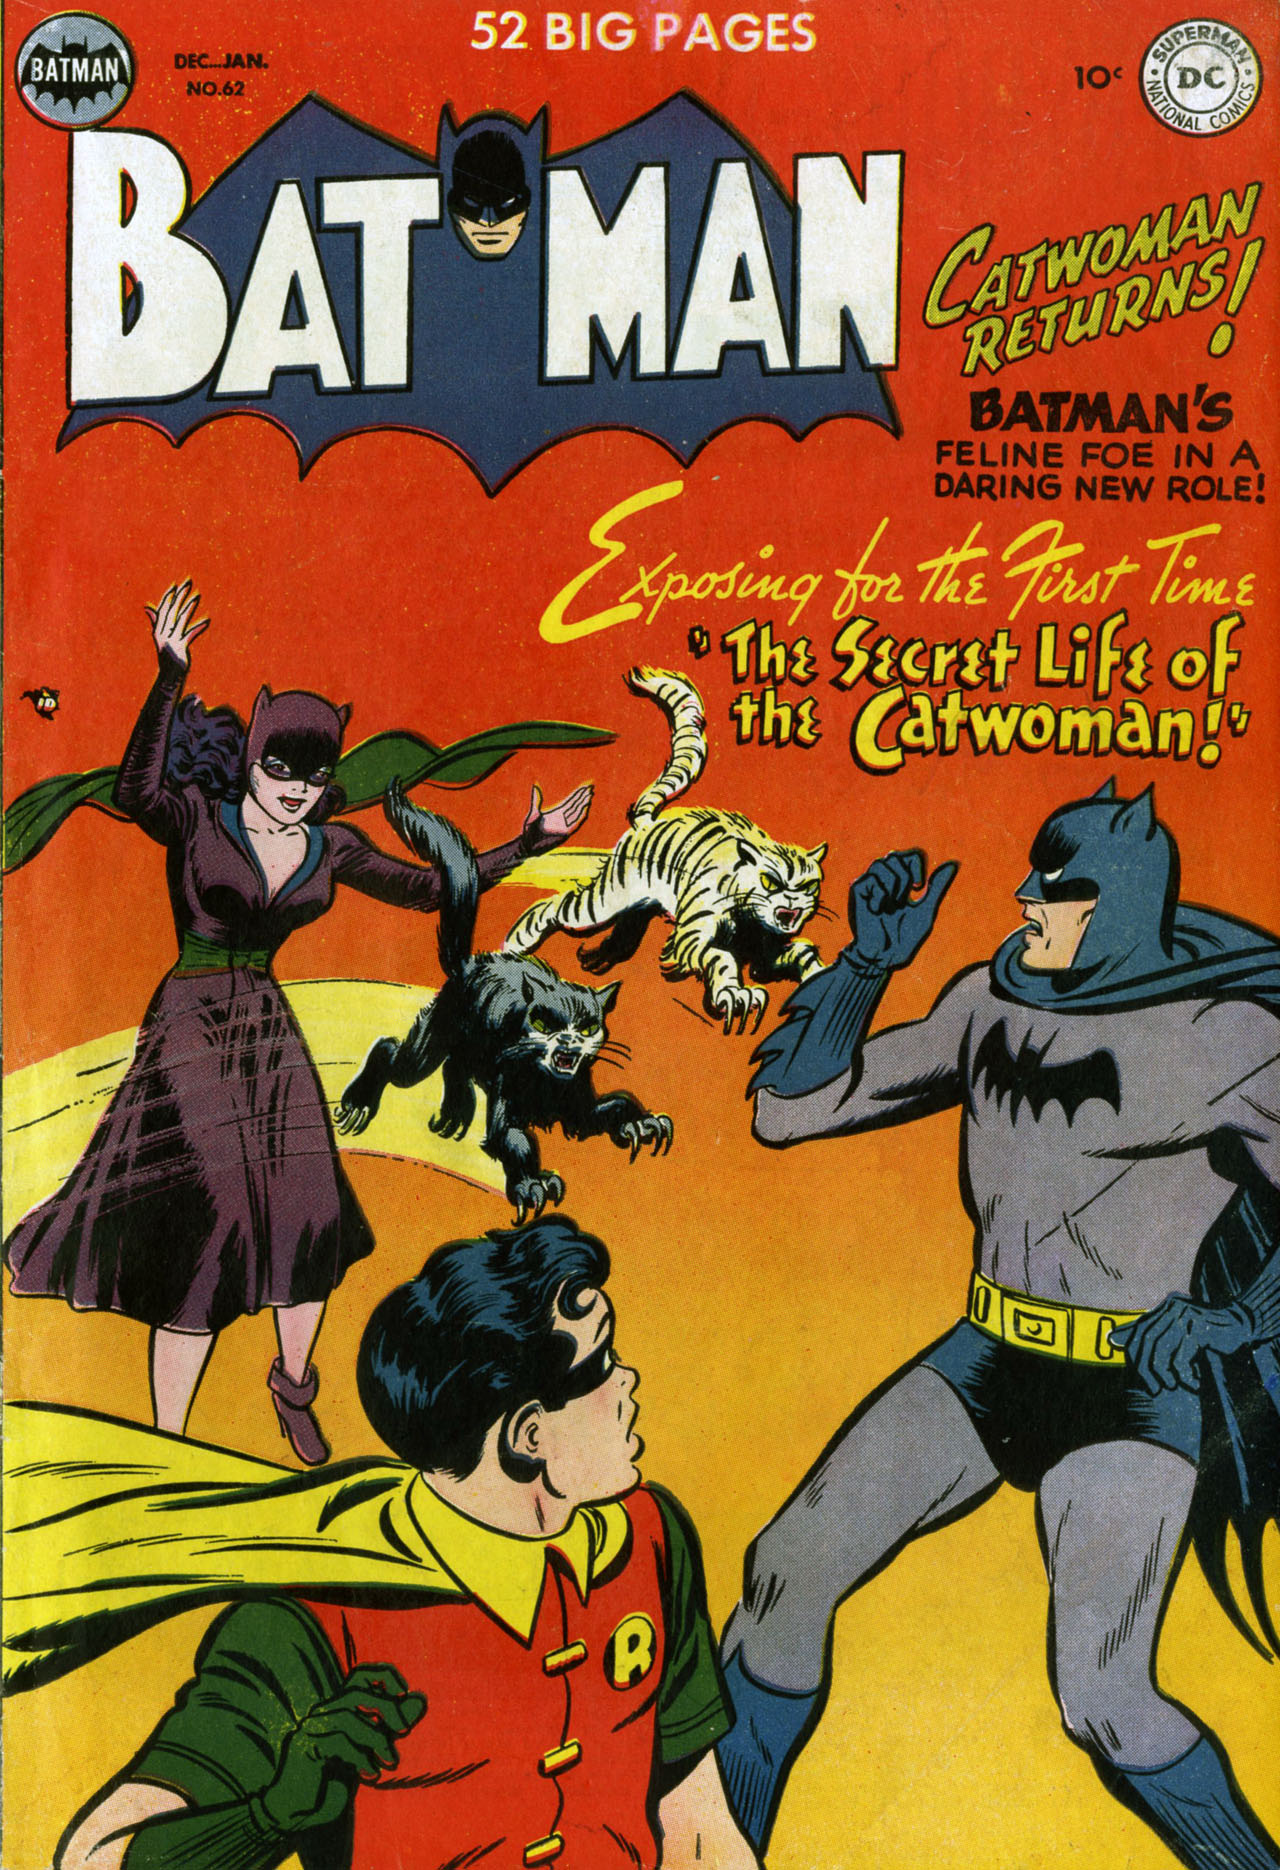 Cover for batman 62 1950